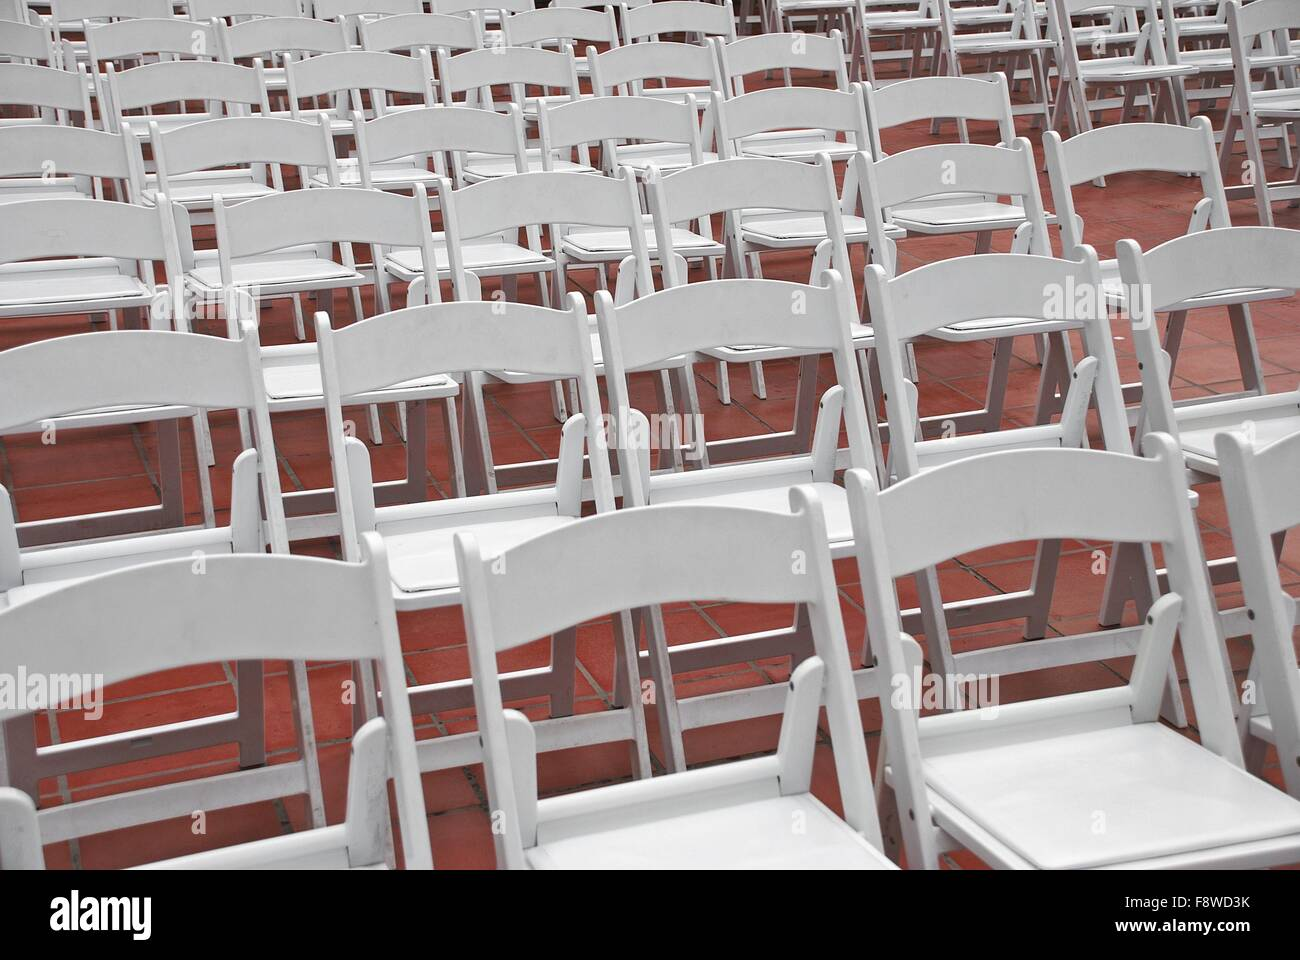 White Catering Chairs Stock Photo Royalty Free Image - Catering chairs